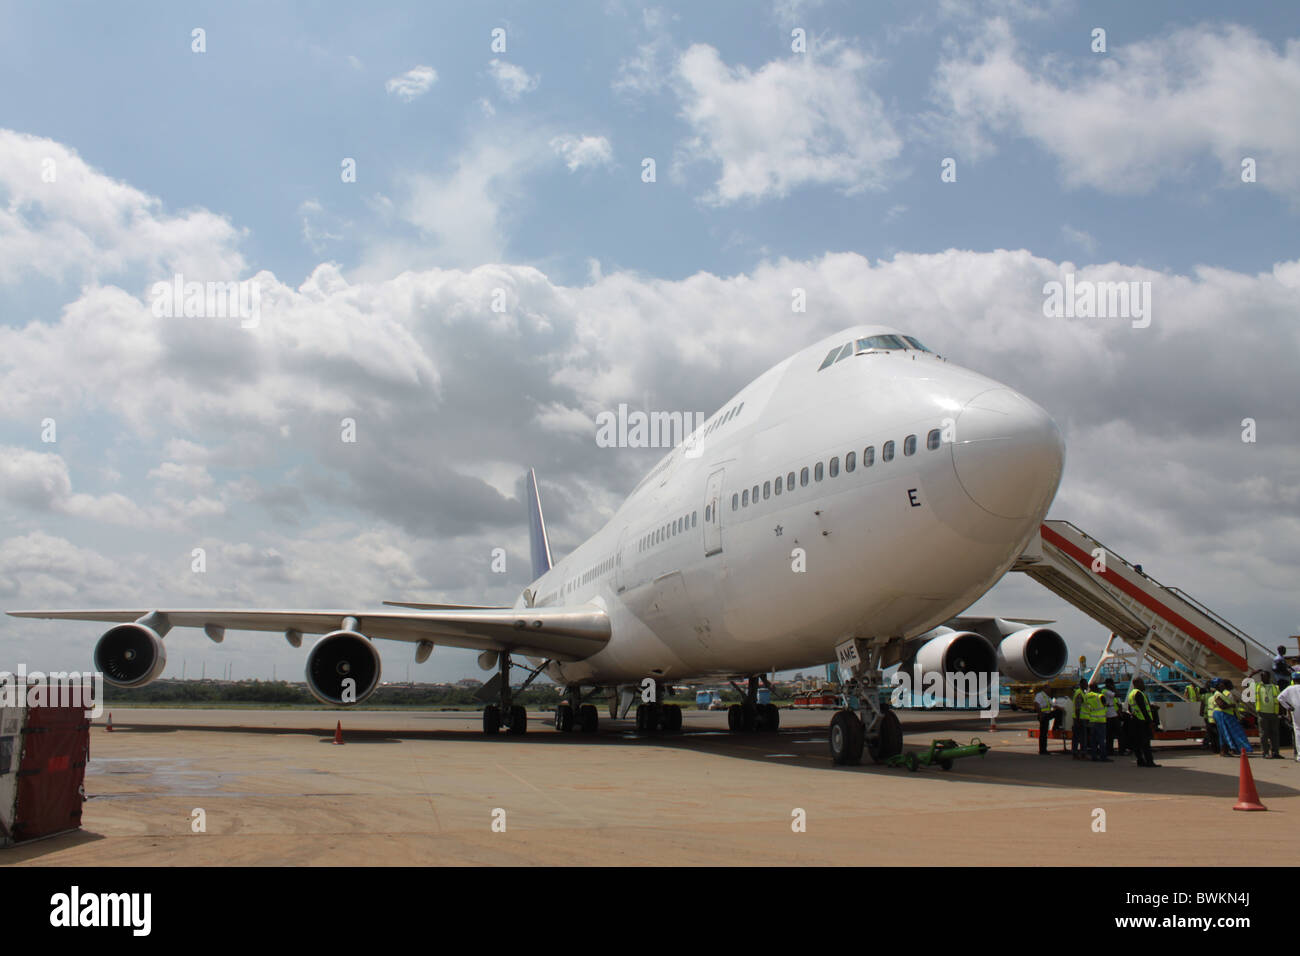 A parked Boeing plane (747) type at the Murtala Muhammed International Airport, Lagos at the cargo sector. - Stock Image